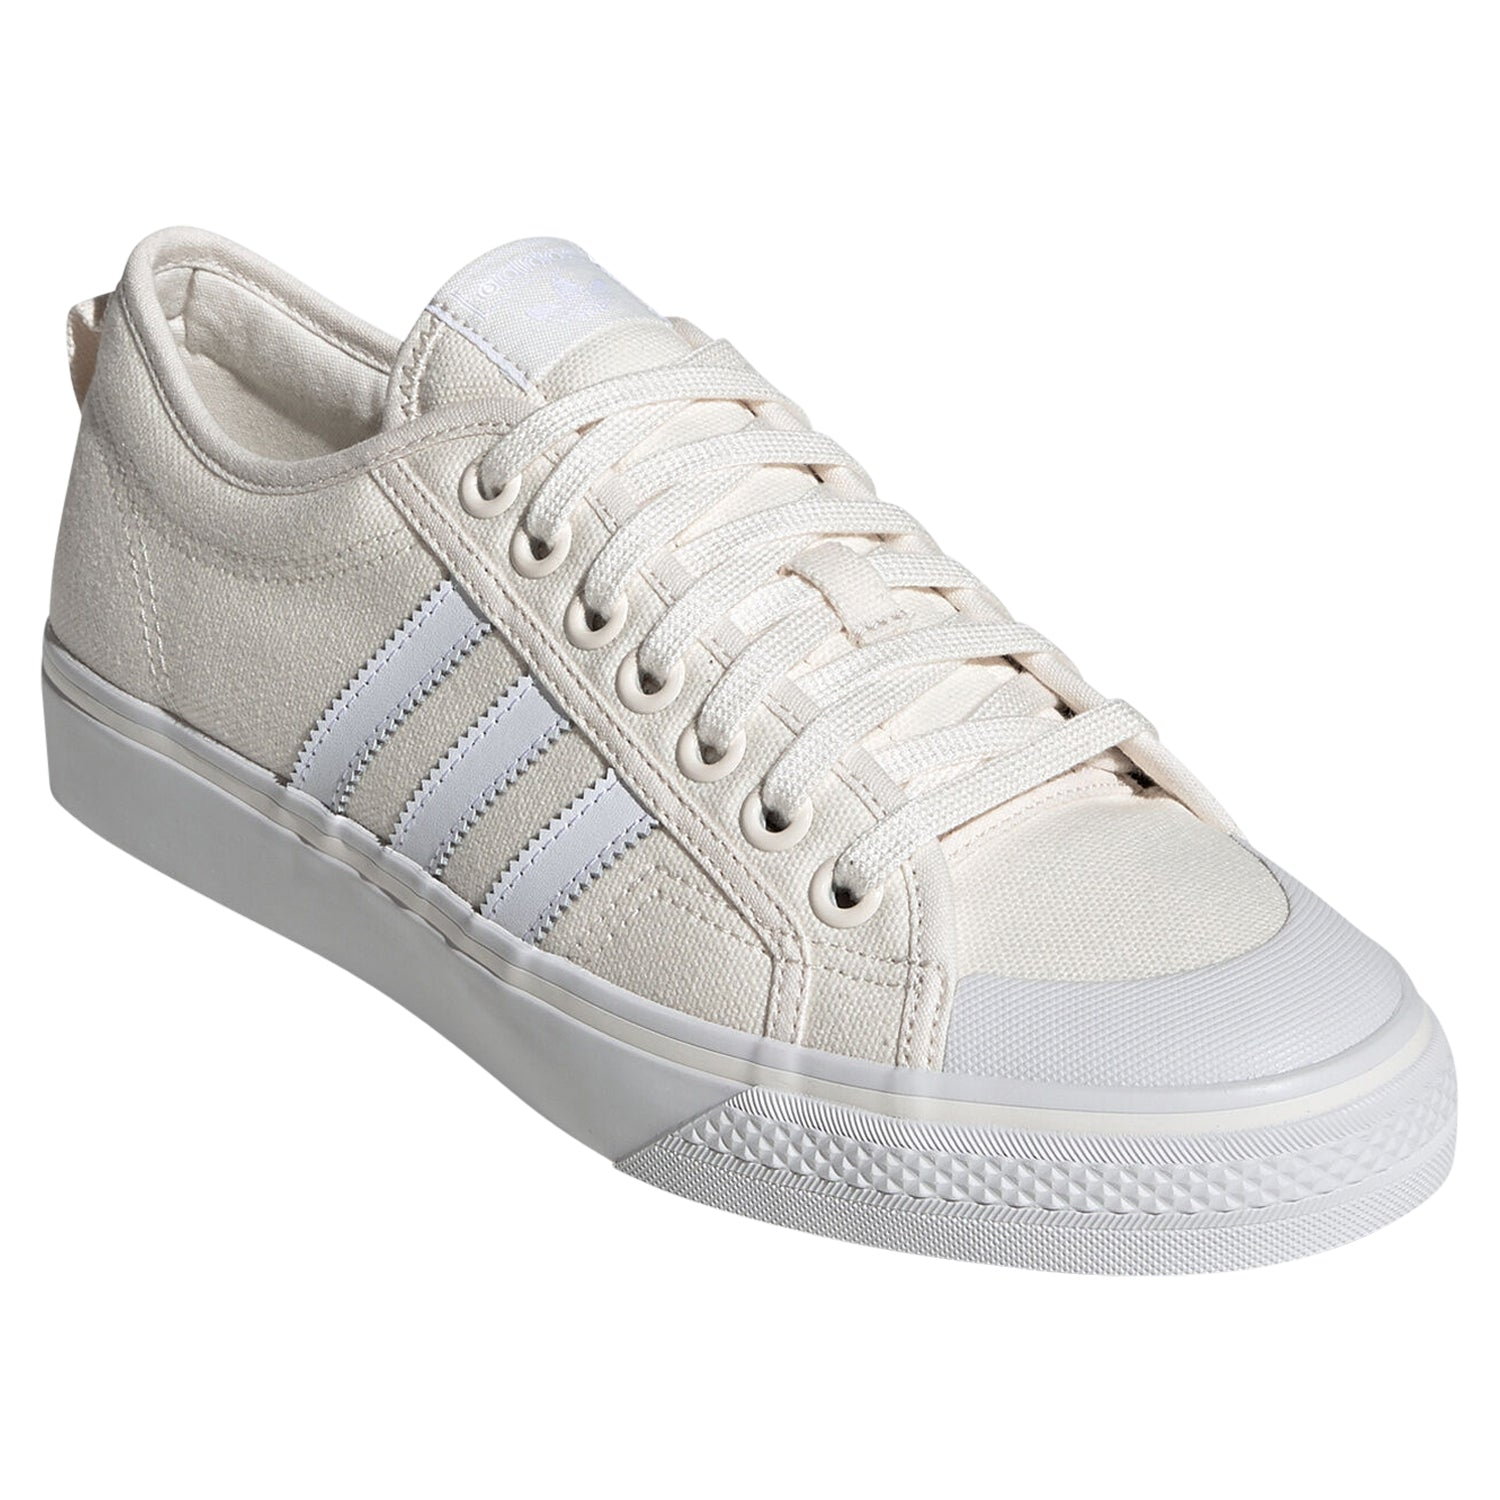 bolita Ajustarse tierra  adidas Originals Men's Nizza Lo Shoes - Off White BD7547 - Trade Sports